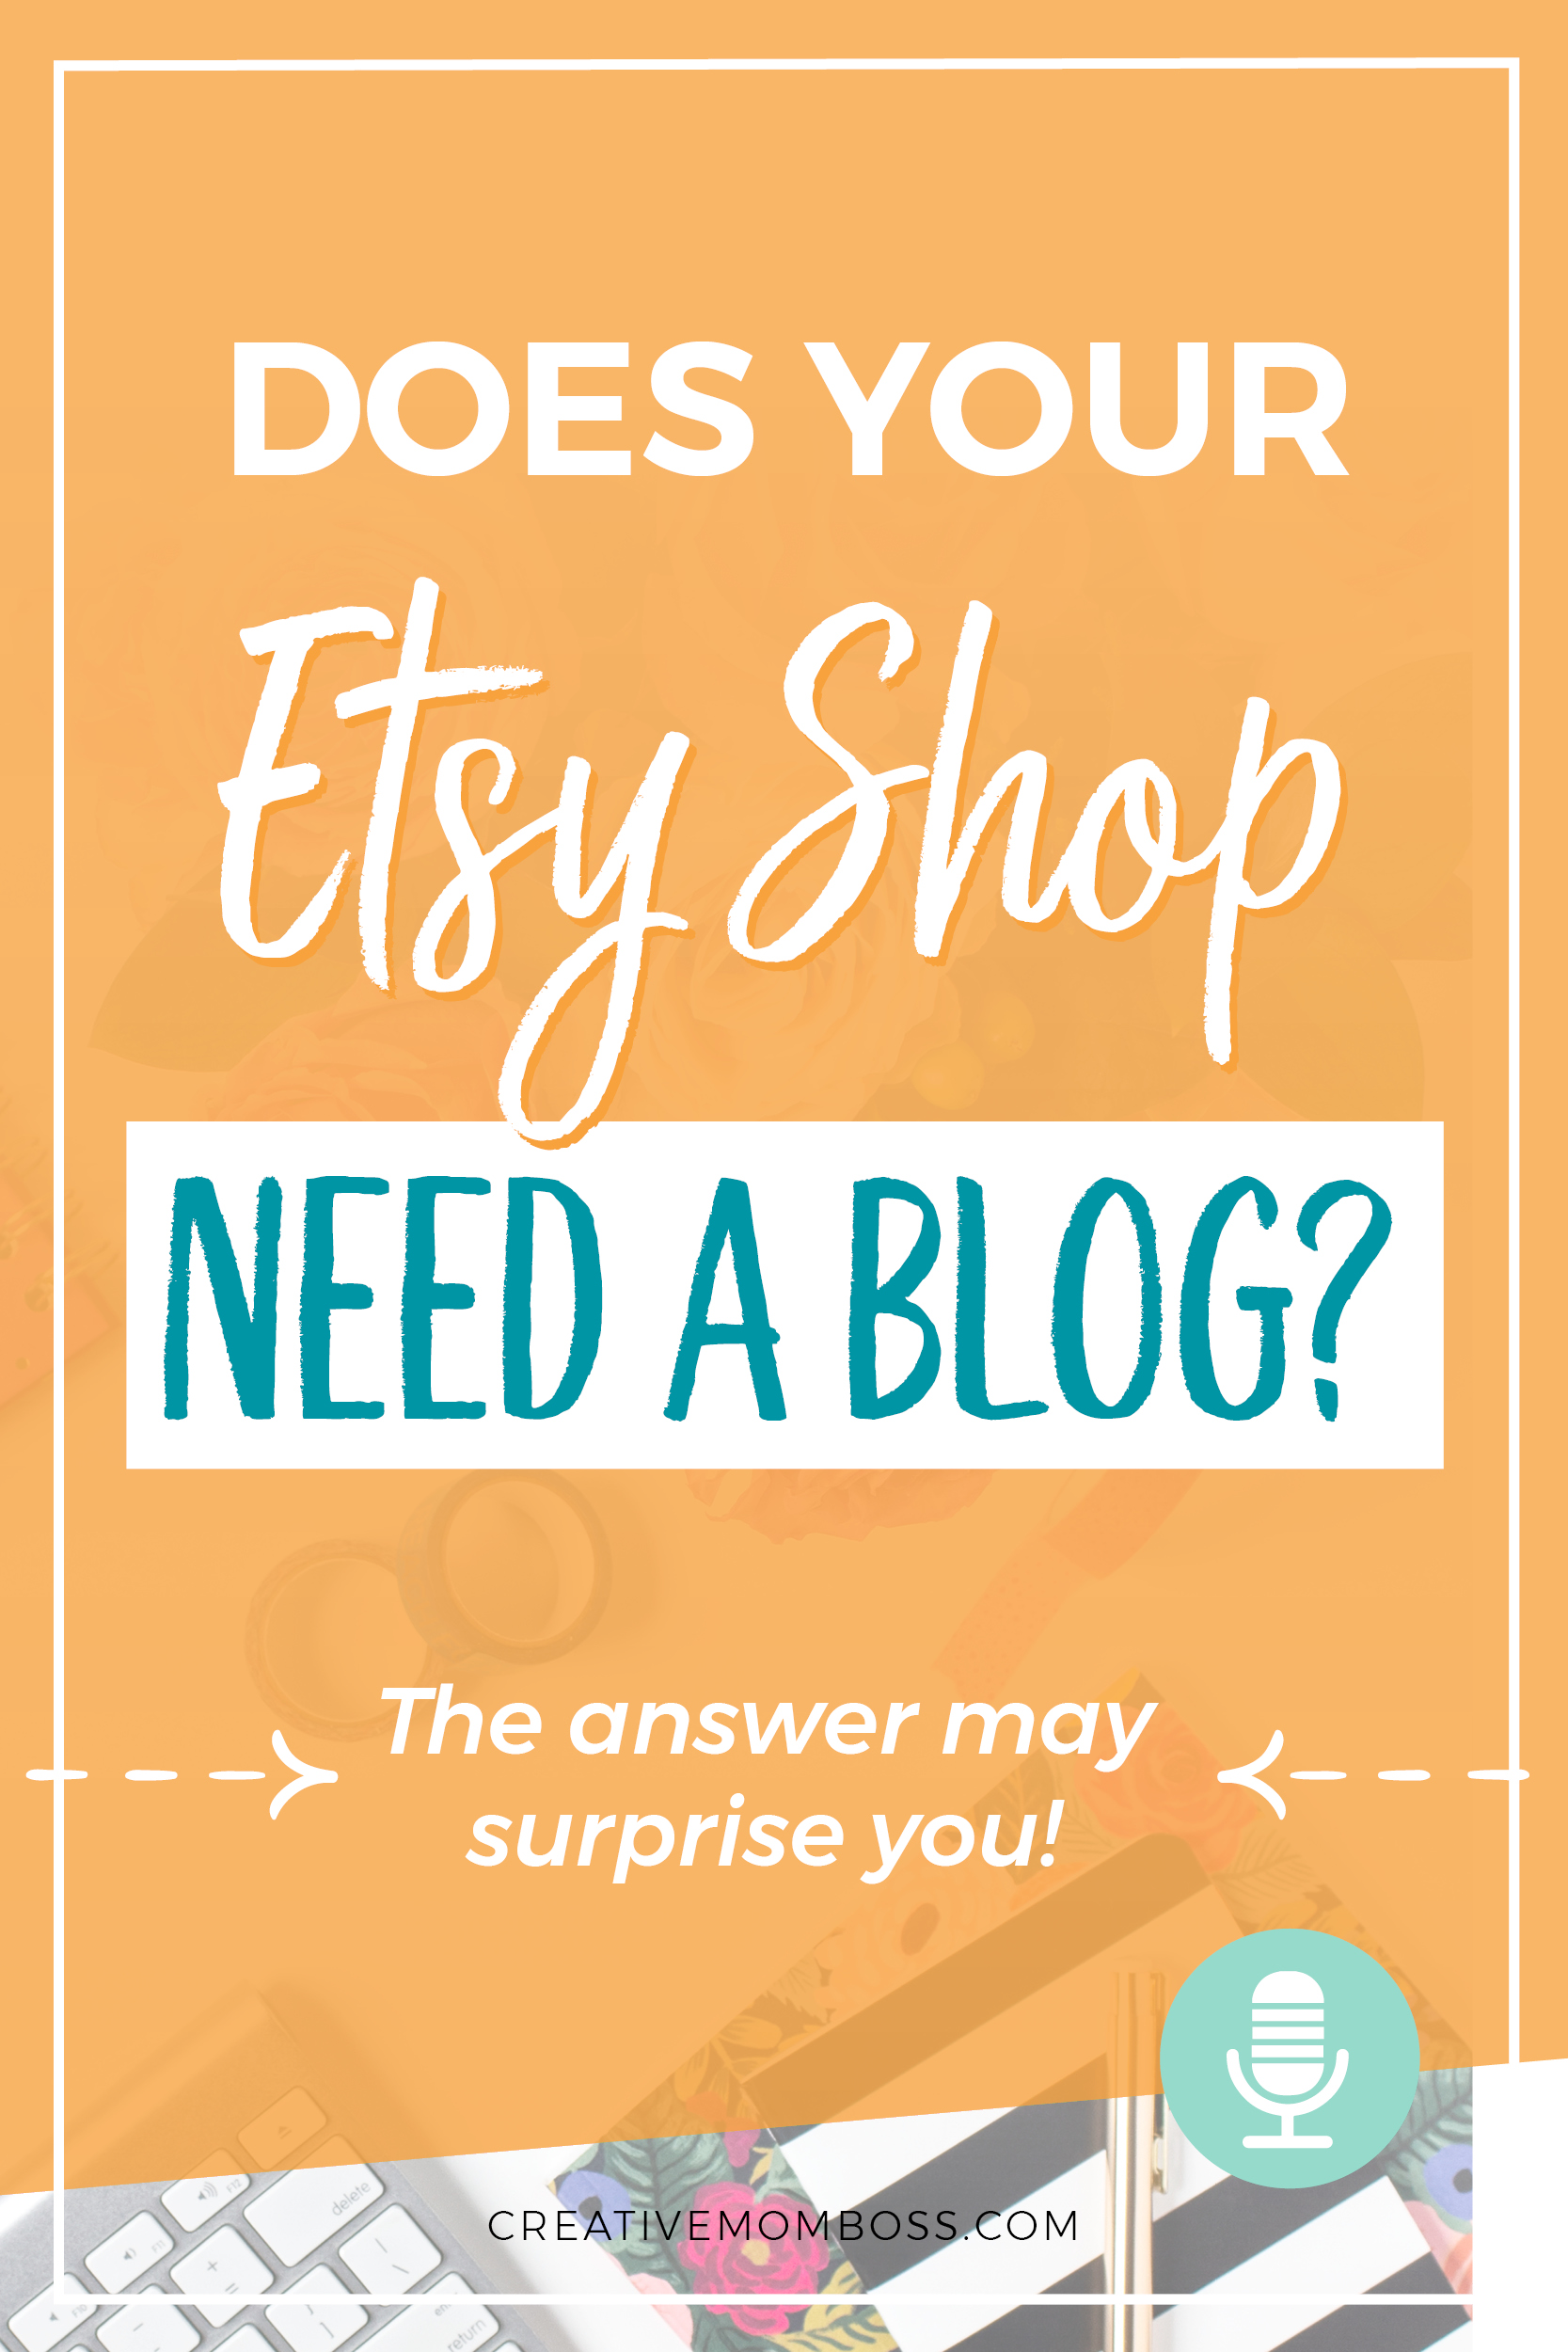 Blogging for your Etsy shop? Terrible advice. Here's what to do instead.